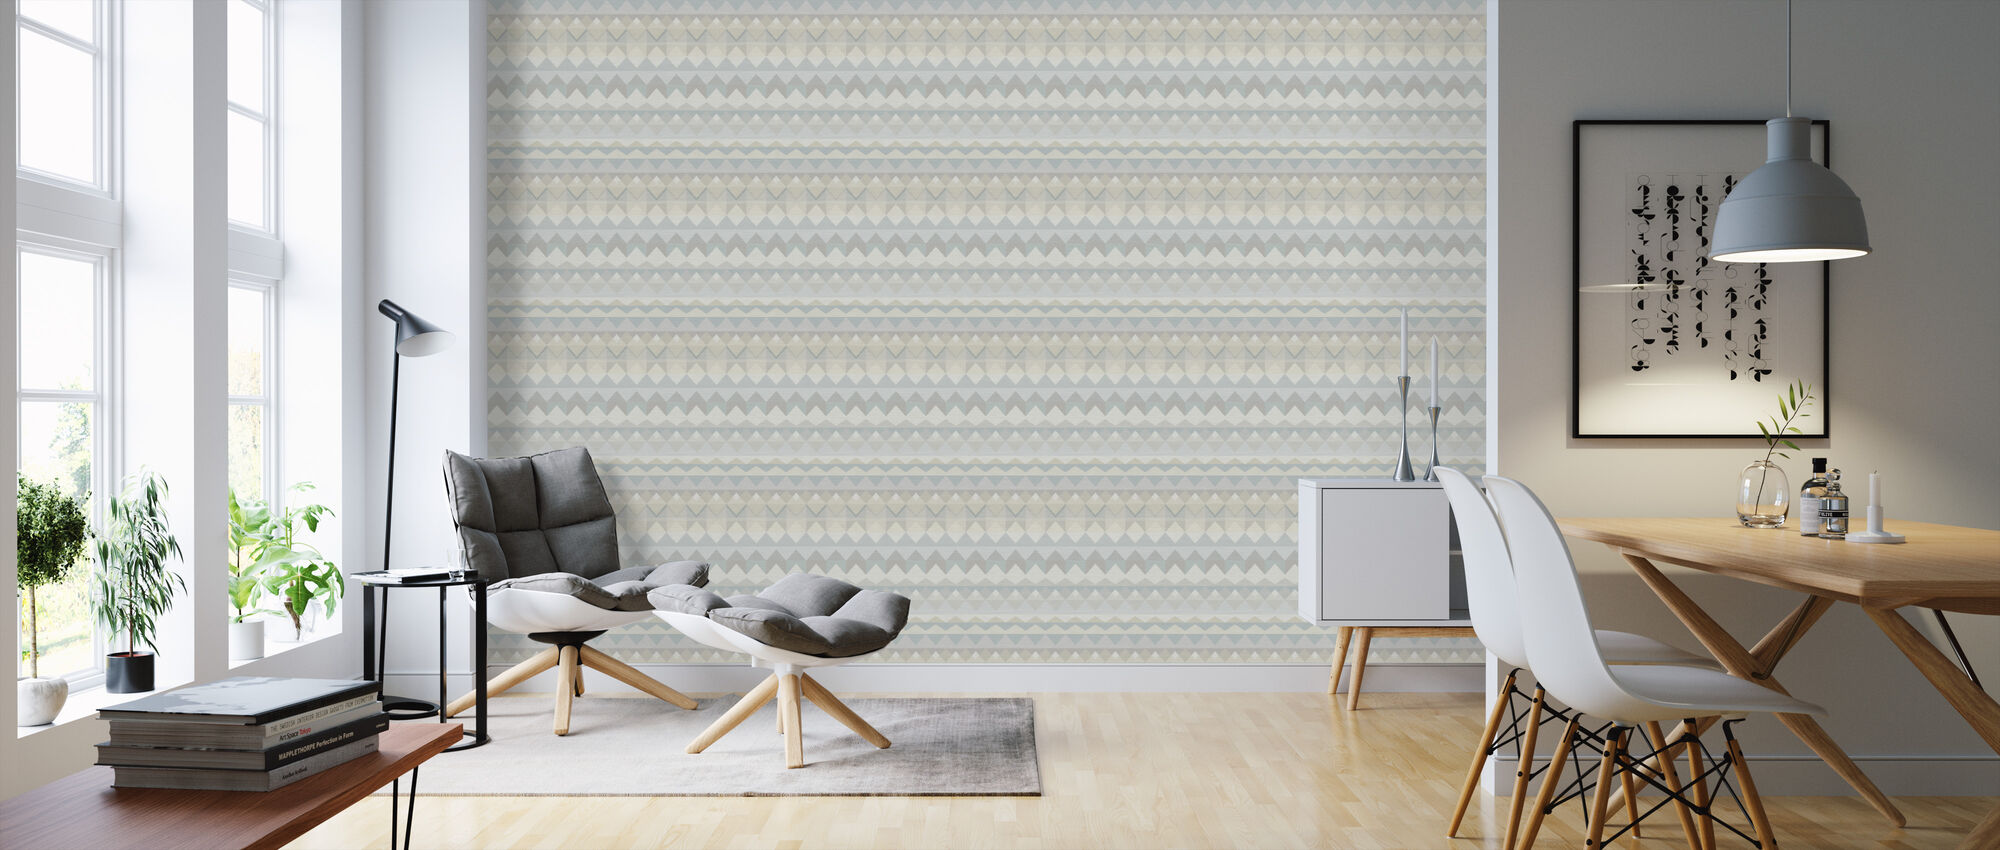 Weave Calm - Wallpaper - Living Room